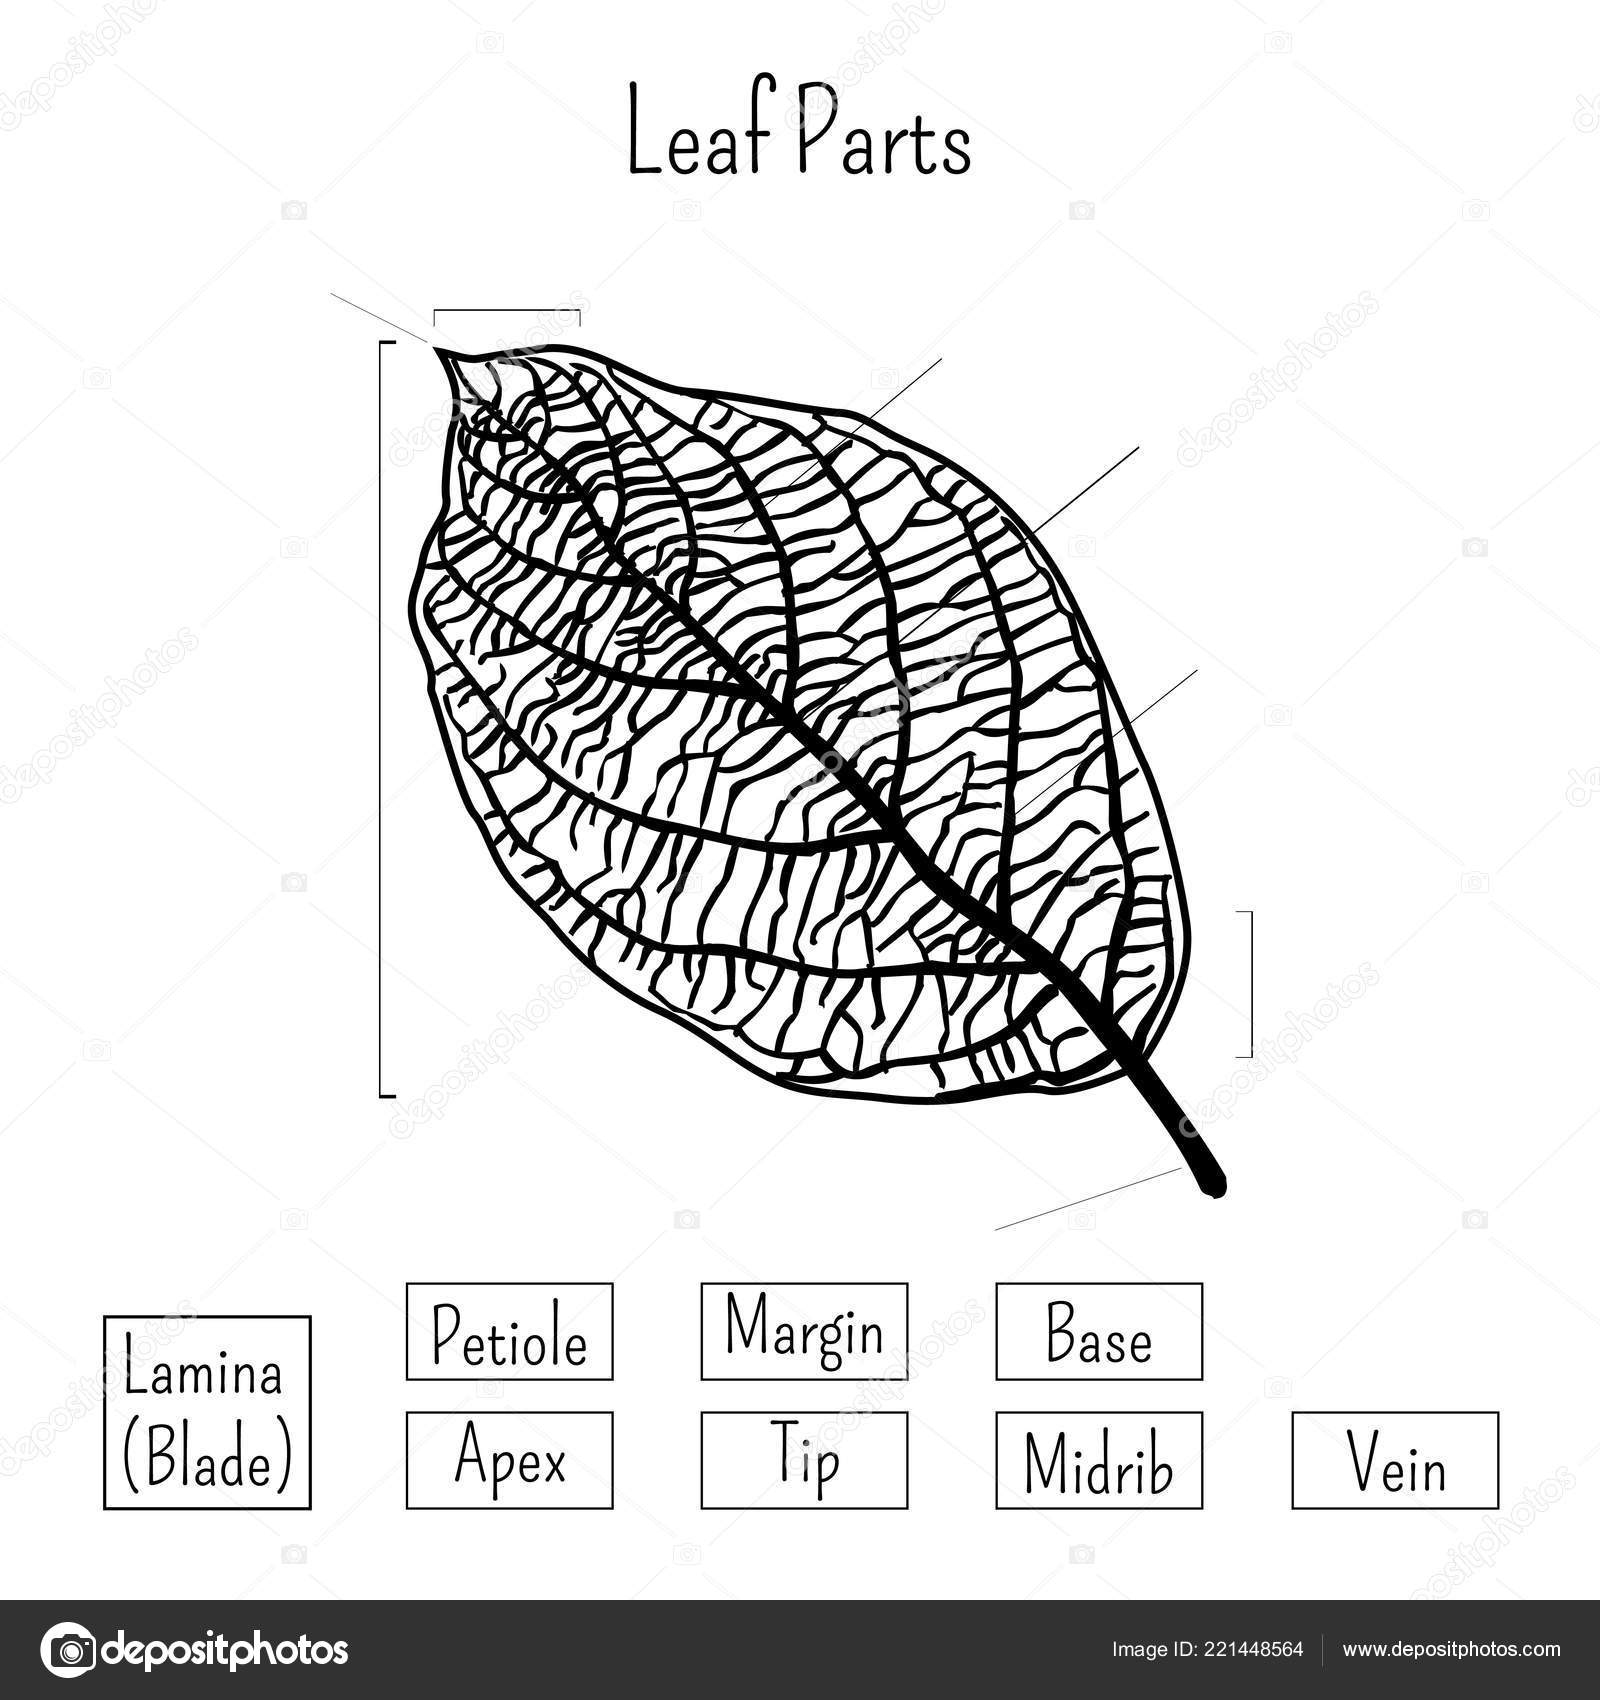 Label parts of plants worksheet | Basic leaf parts worksheet ...